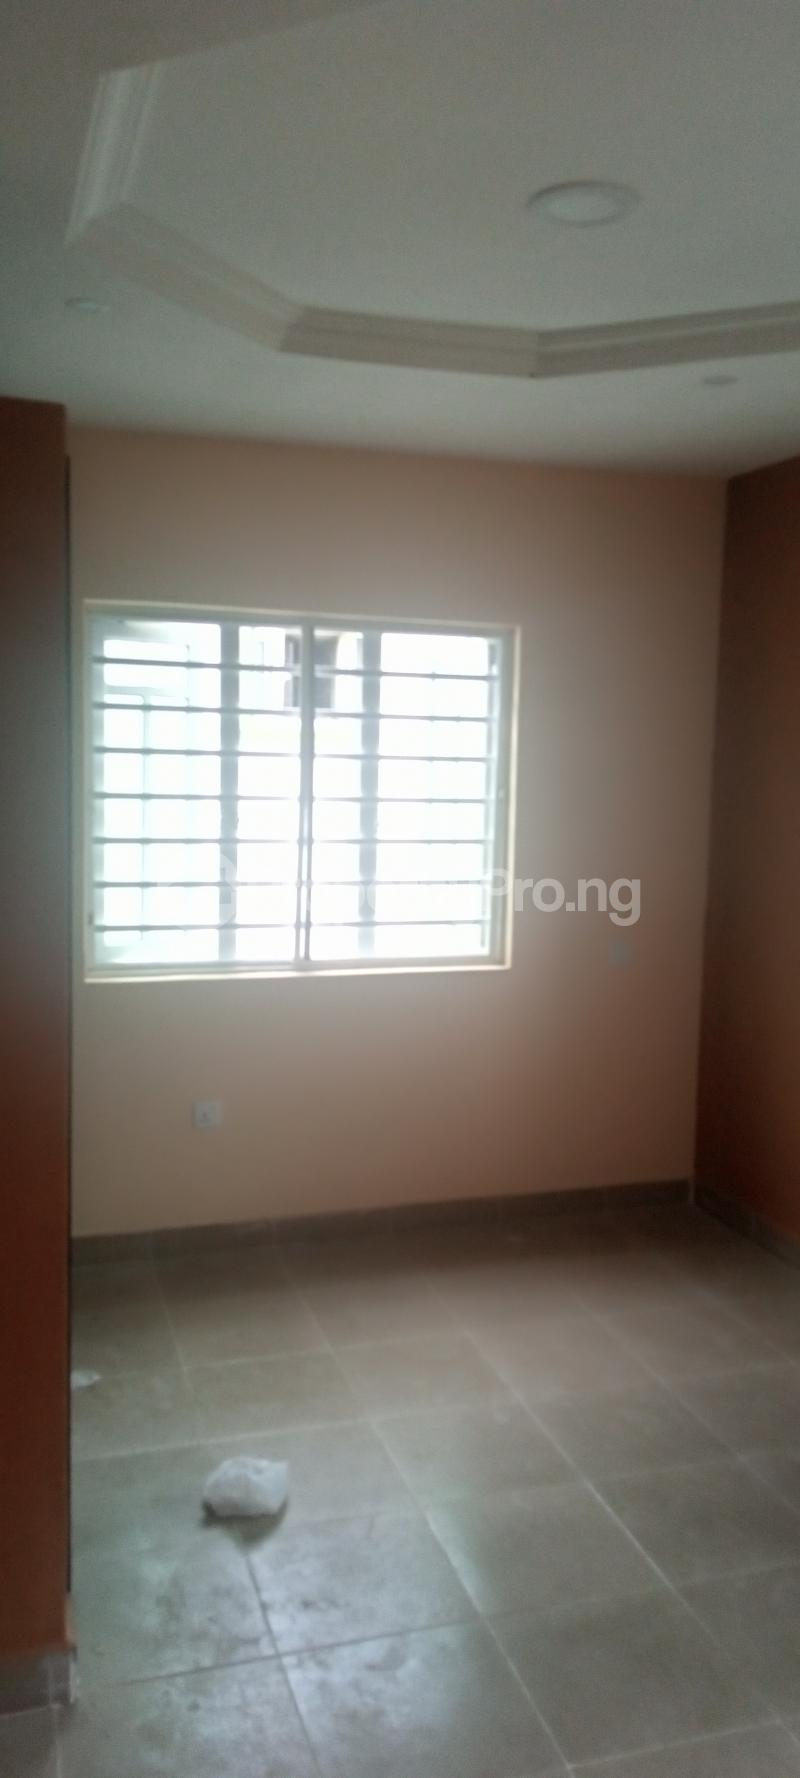 3 bedroom Flat / Apartment for rent A close Oke-Ira Ogba Lagos - 7